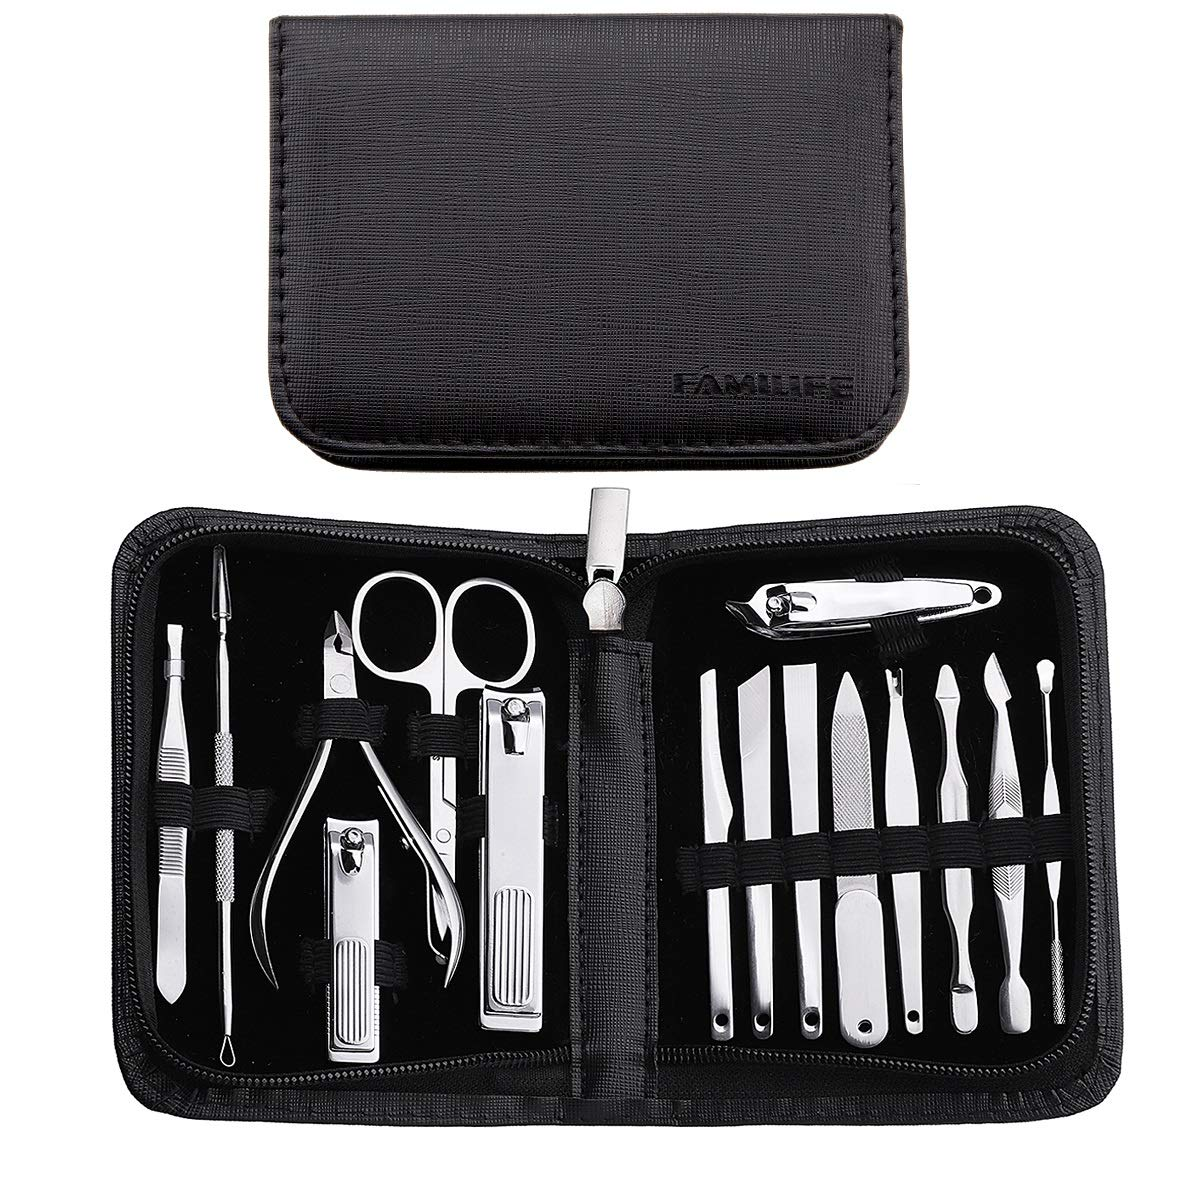 FAMILIFE F02 Manicure Set,15 in 1 Nail Clippers Professional Stainless Steel Manicure Kit Manicure Tools with Travel Case Grooming Kit for Women Men by FAMILIFE